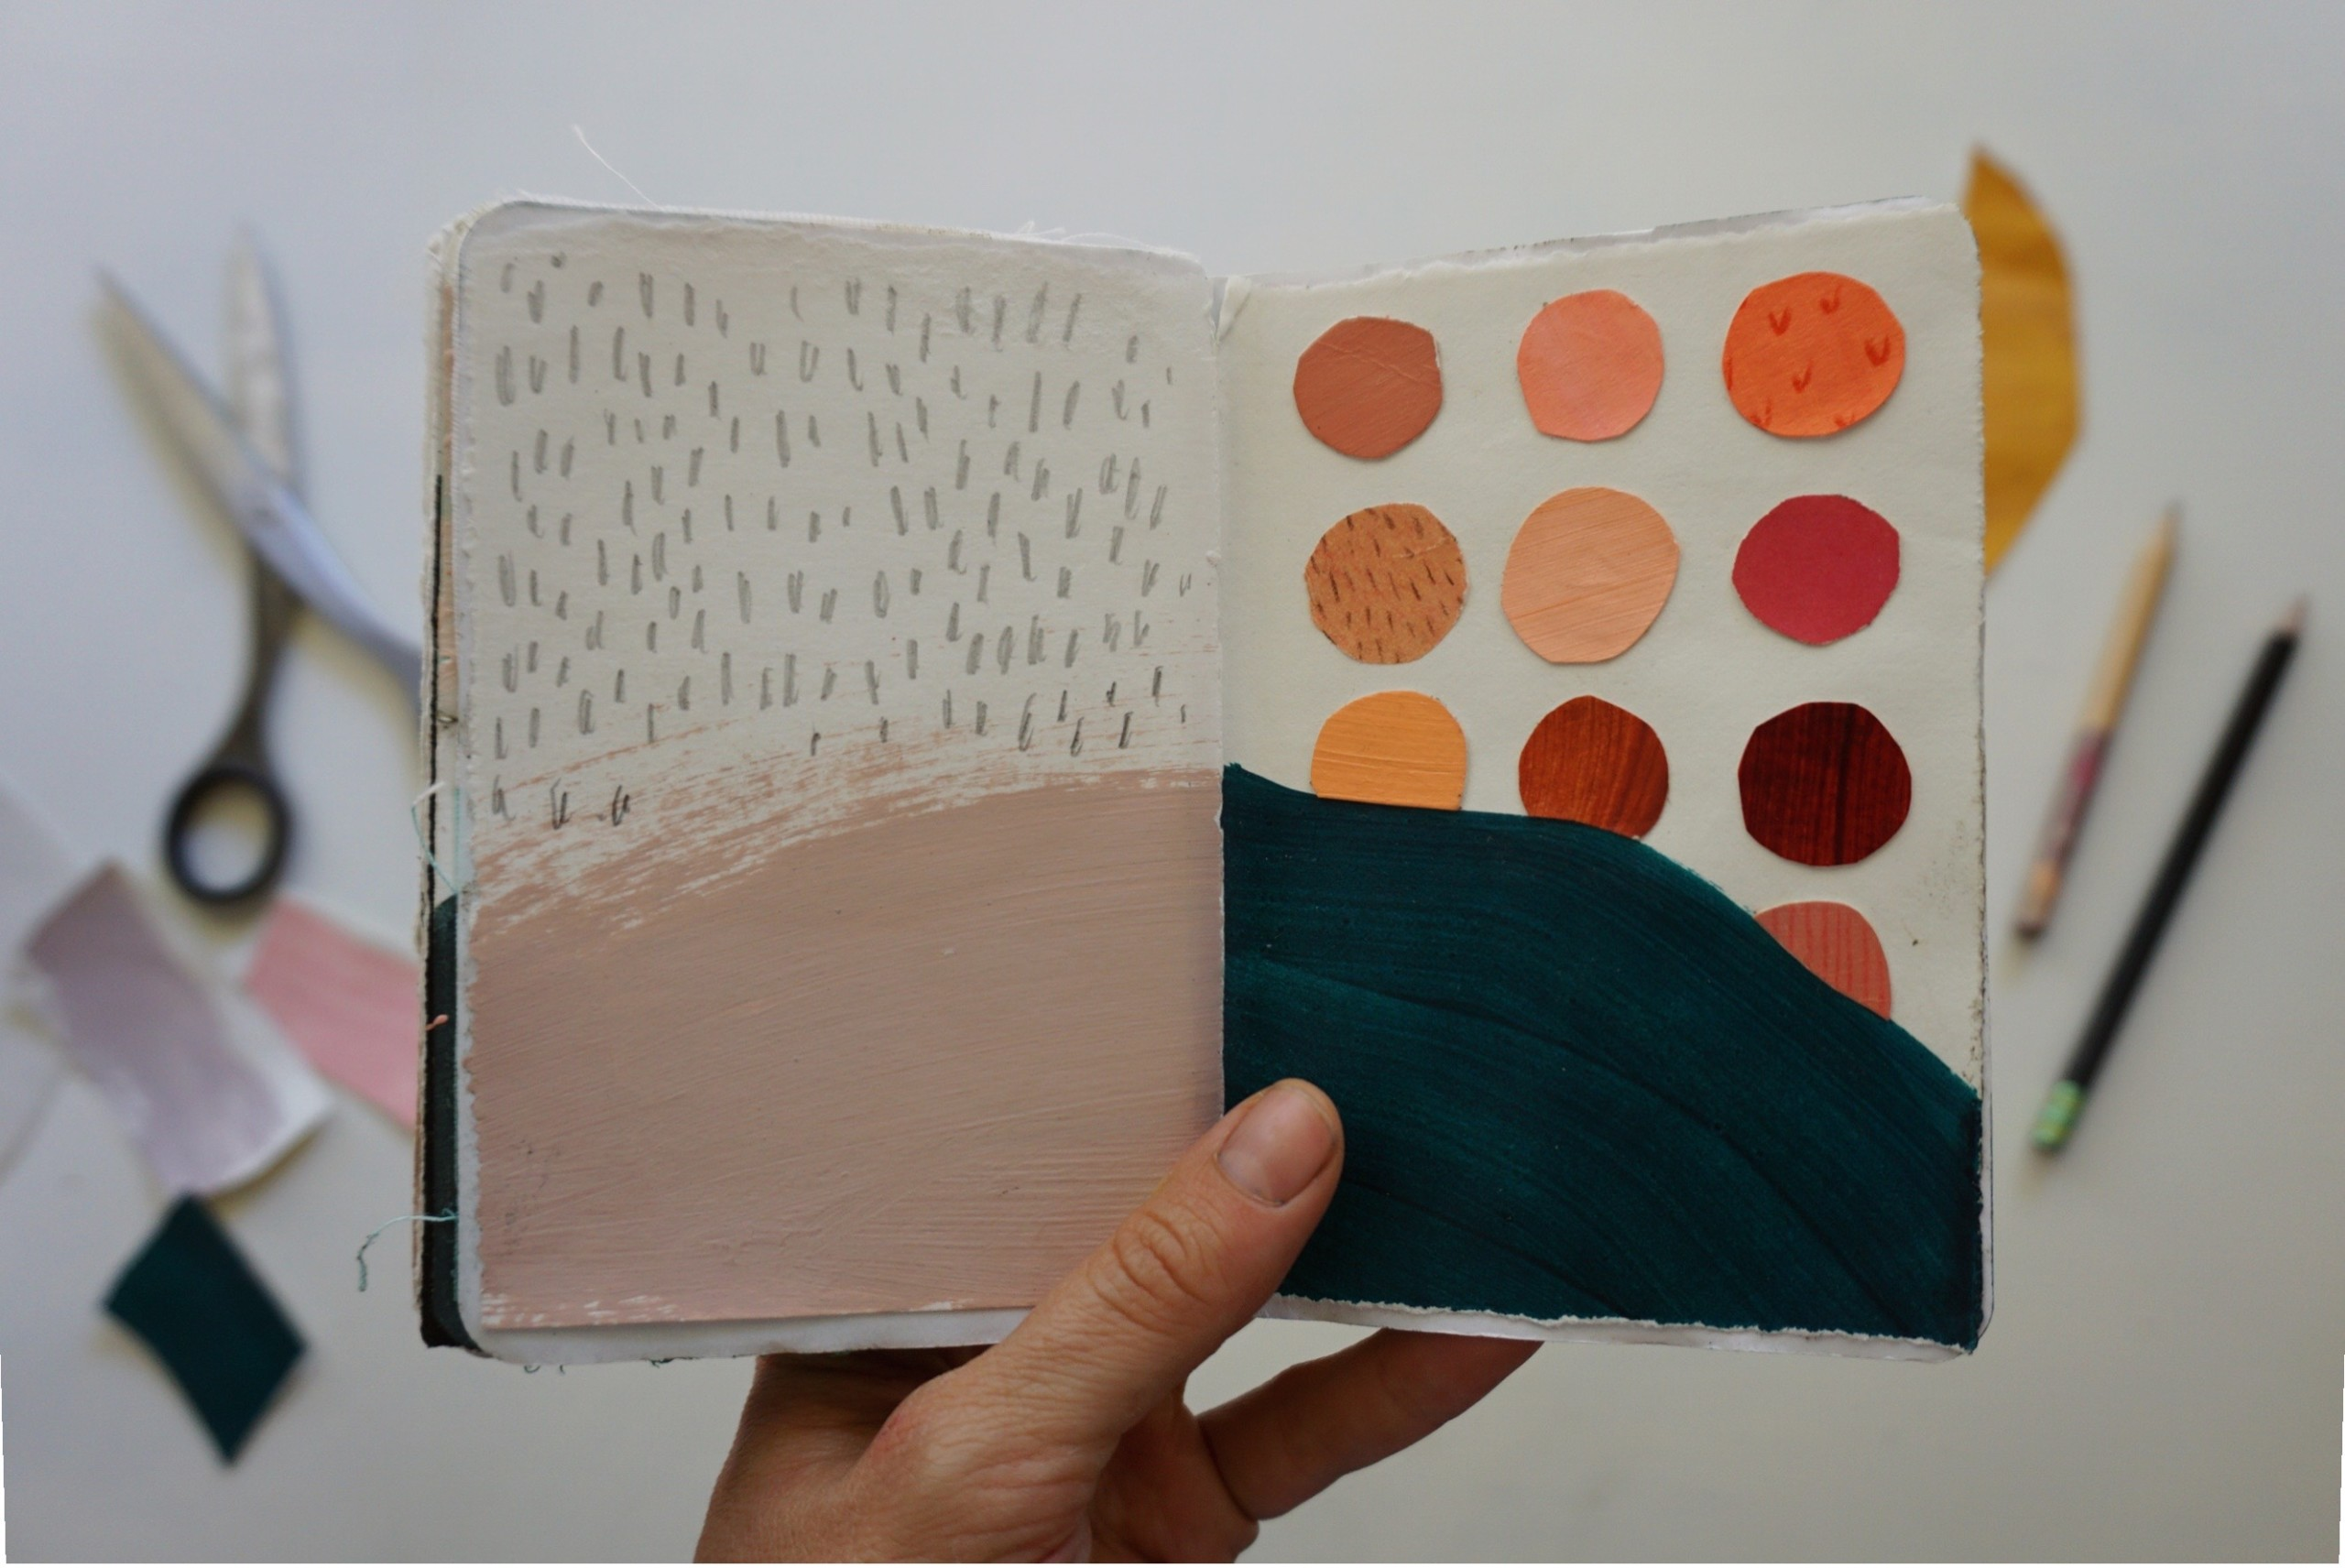 Rachel shows an open view of her sketchbook with painted and collaged shapes, as well as pencil-drawn marks.